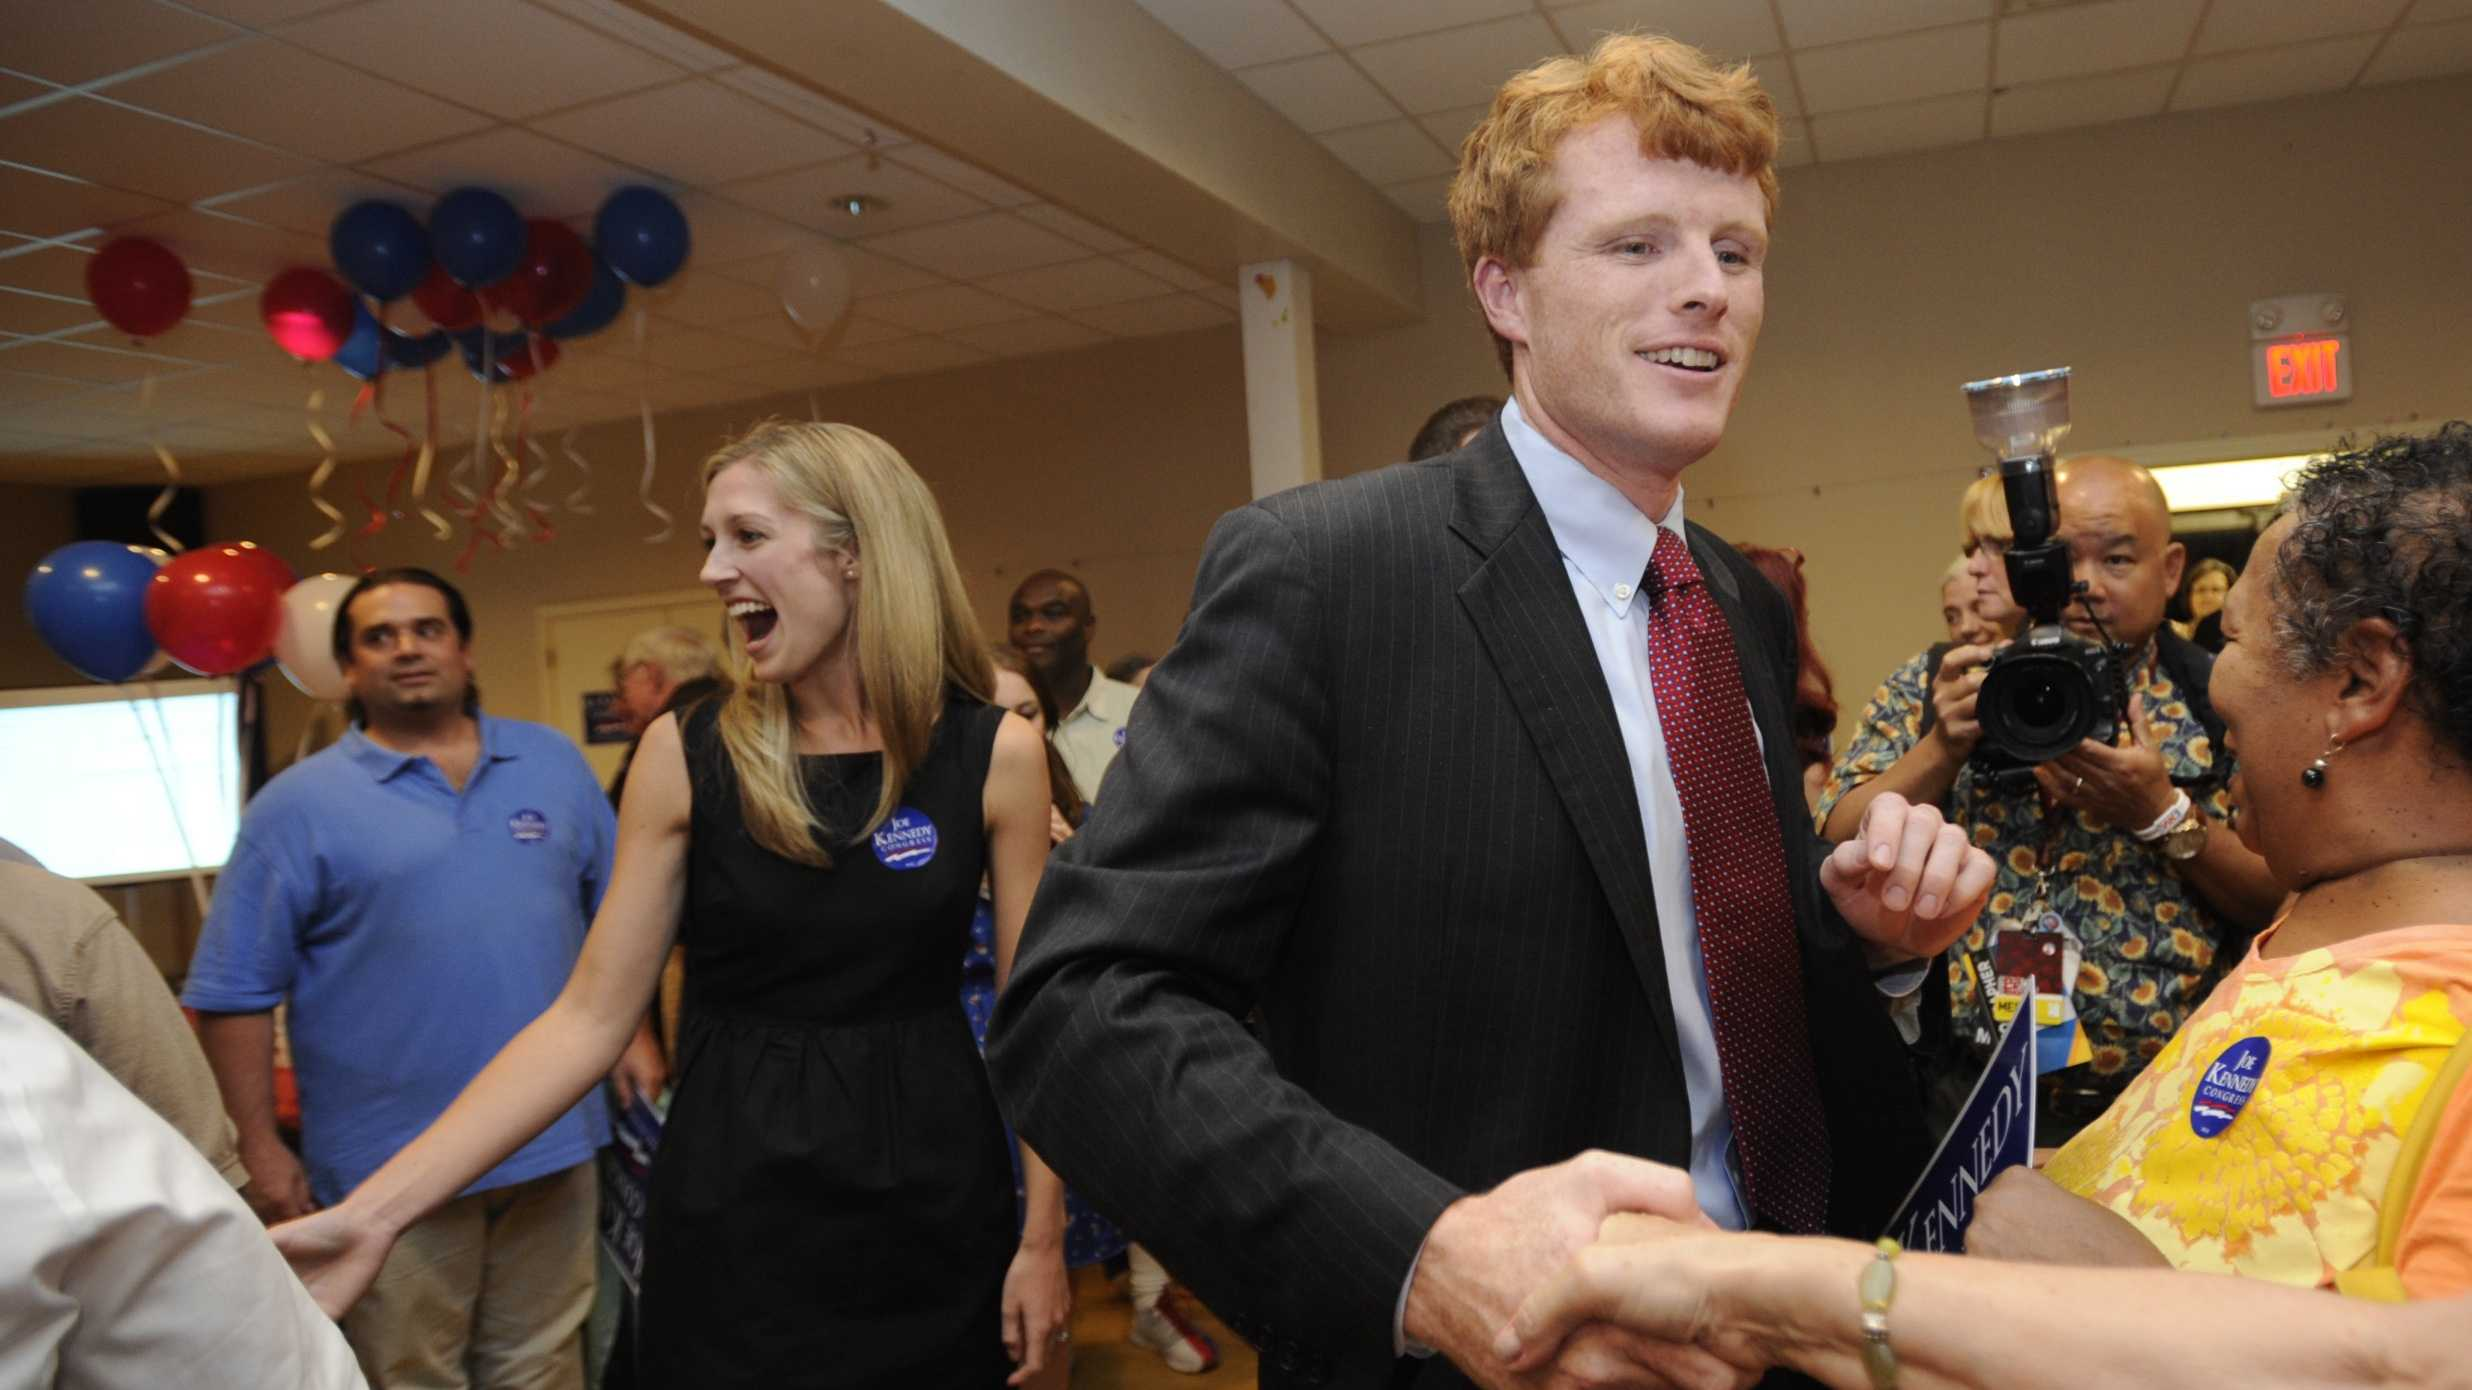 Joseph Kennedy III and his fiance Lauren Anne Birchfield, left, greet supporters during a party in Taunton, Mass., Thursday, Sept. 6, 2012.